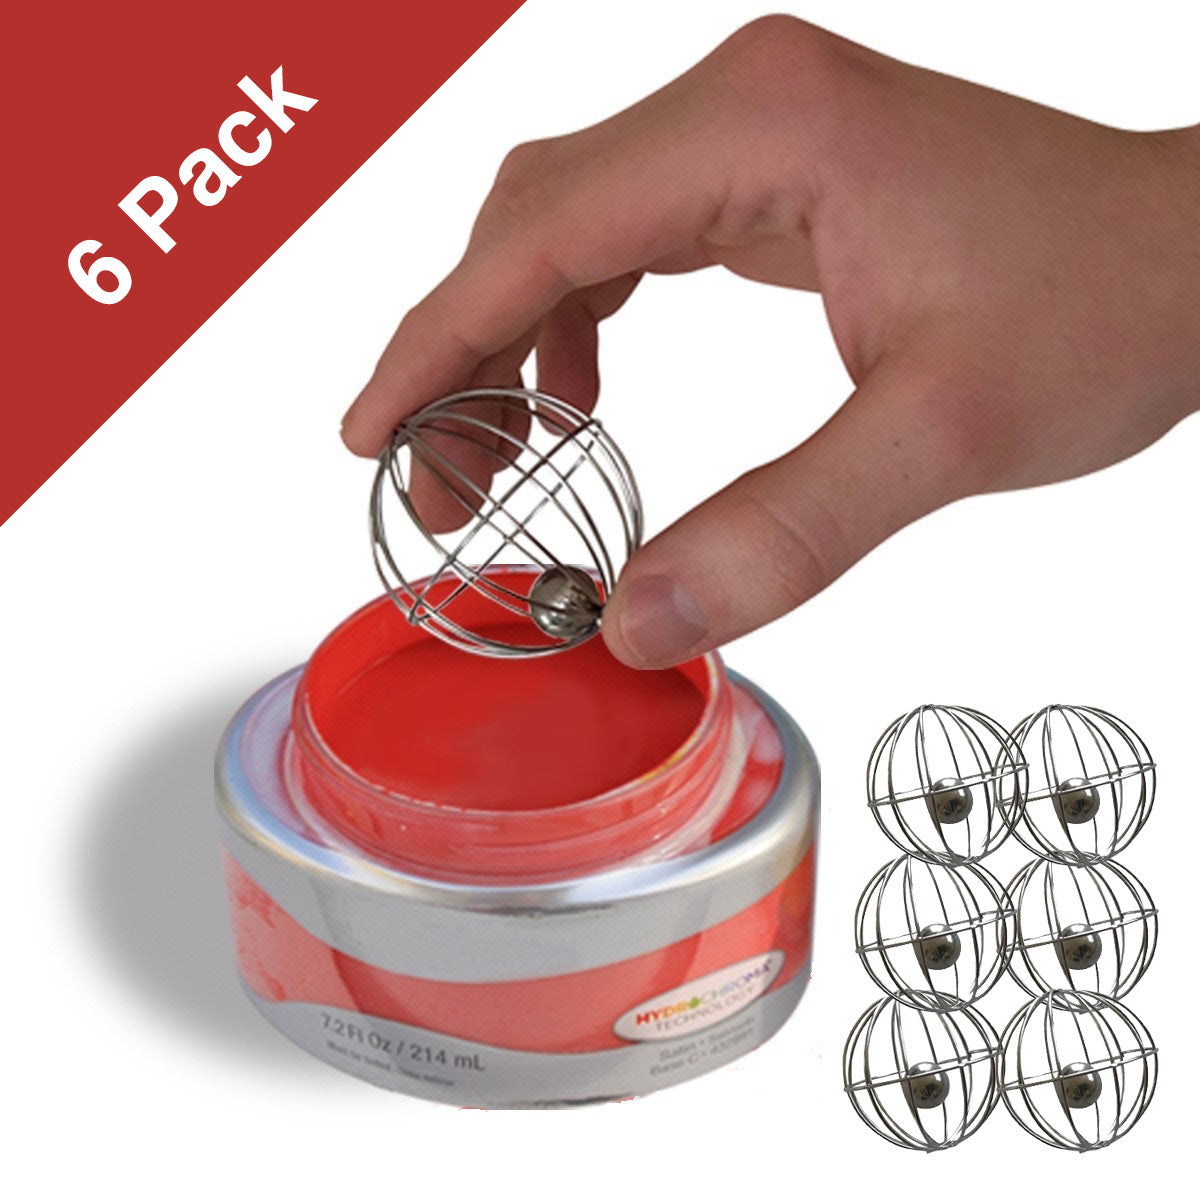 (6) Whisk Balls to mix Chalk Paint, Metallic Paints, Milk Paint, & Ceramic Glazes (6-Pack)